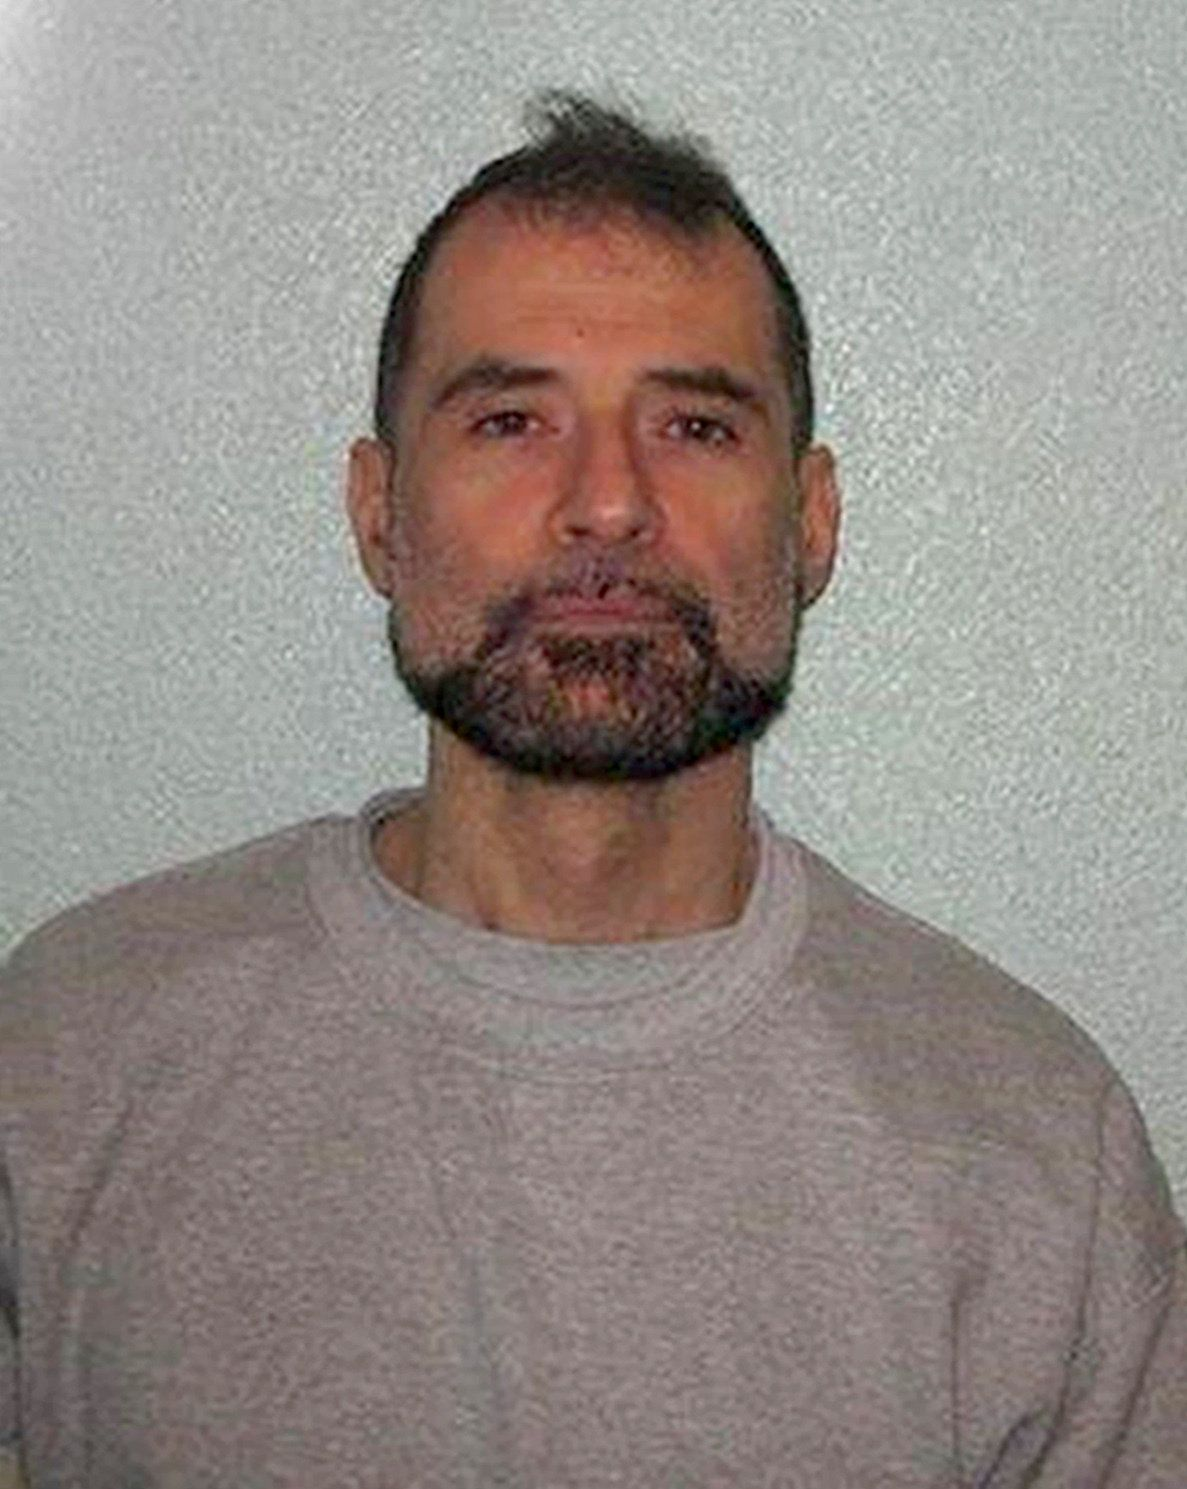 'Breaking Bad' Grindr Killer Stefano Brizzi Found Dead In